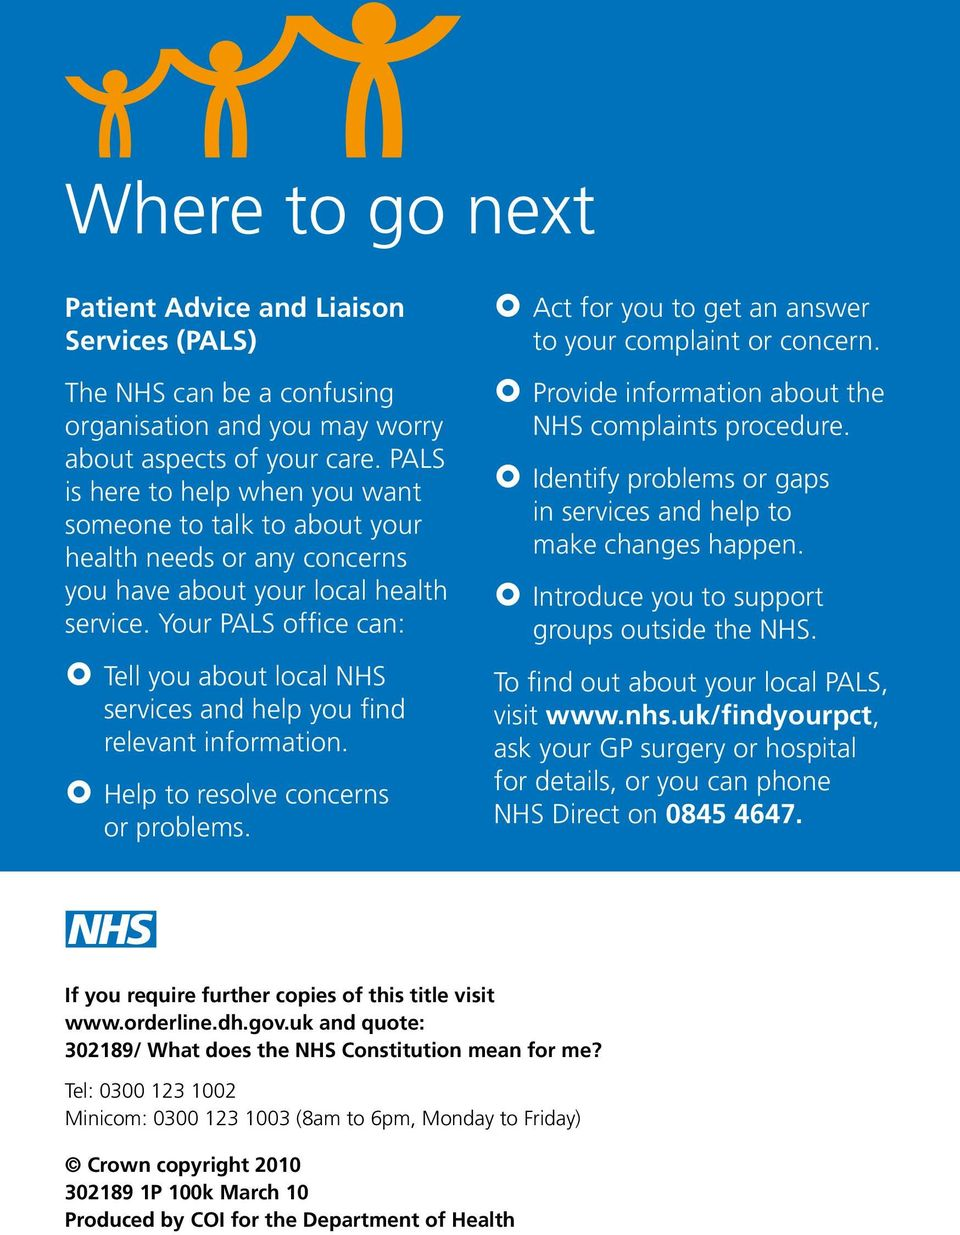 Your PALS office can: } Tell you about local NHS services and help you find relevant information. } Help to resolve concerns or problems. } Act for you to get an answer to your complaint or concern.